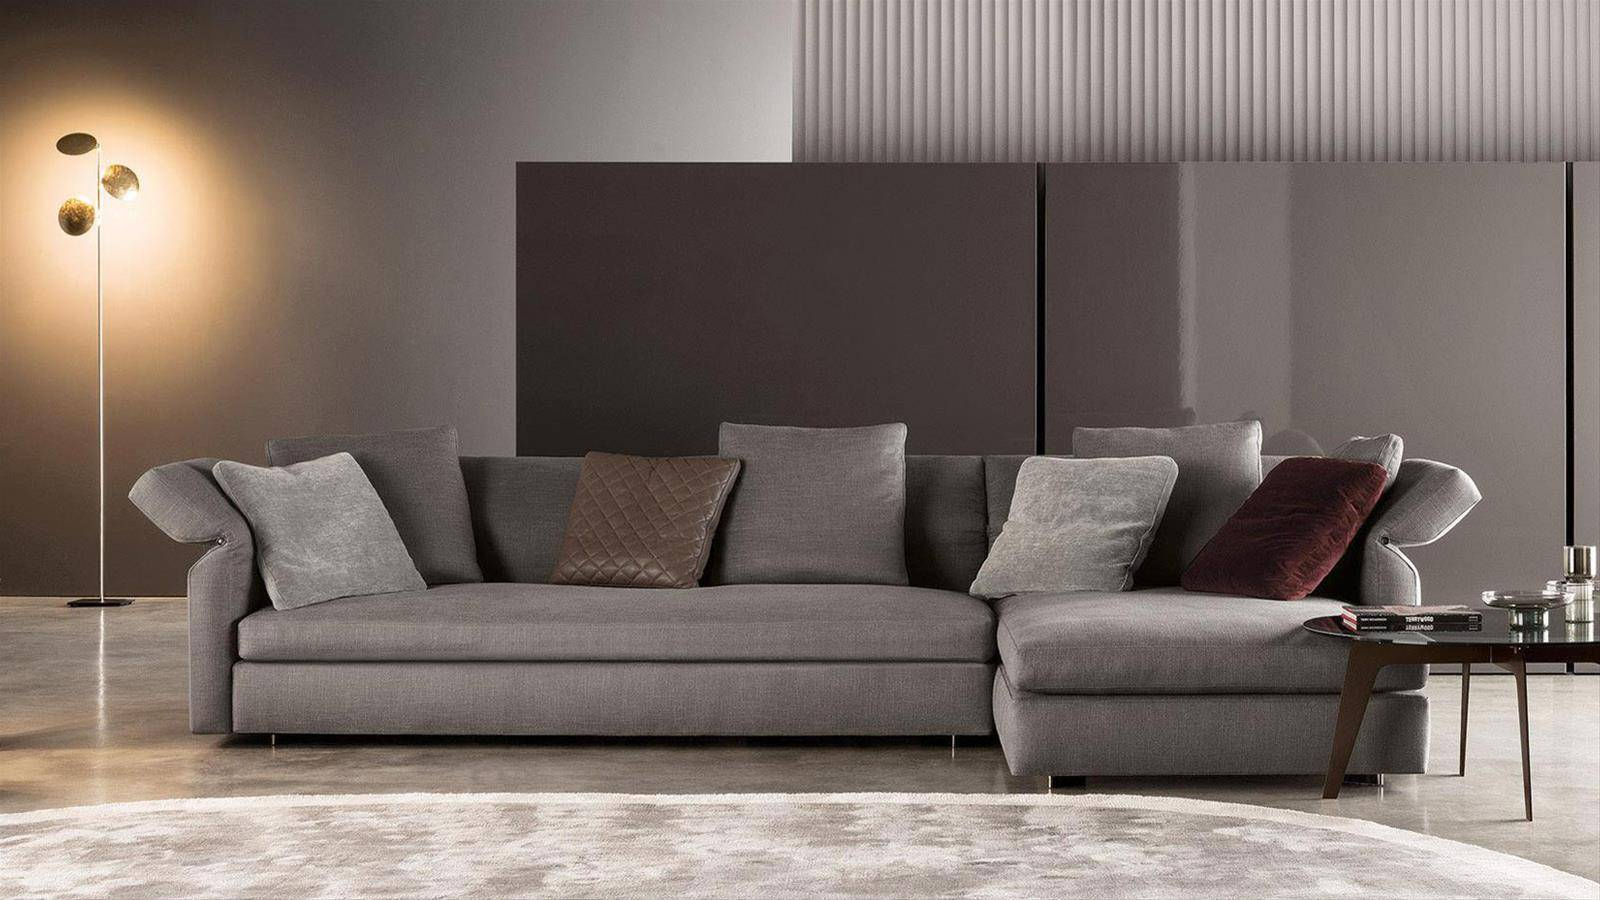 Sofa Italiano Outlet B Andb Italia Outlet And Many More Design Brands Sag80